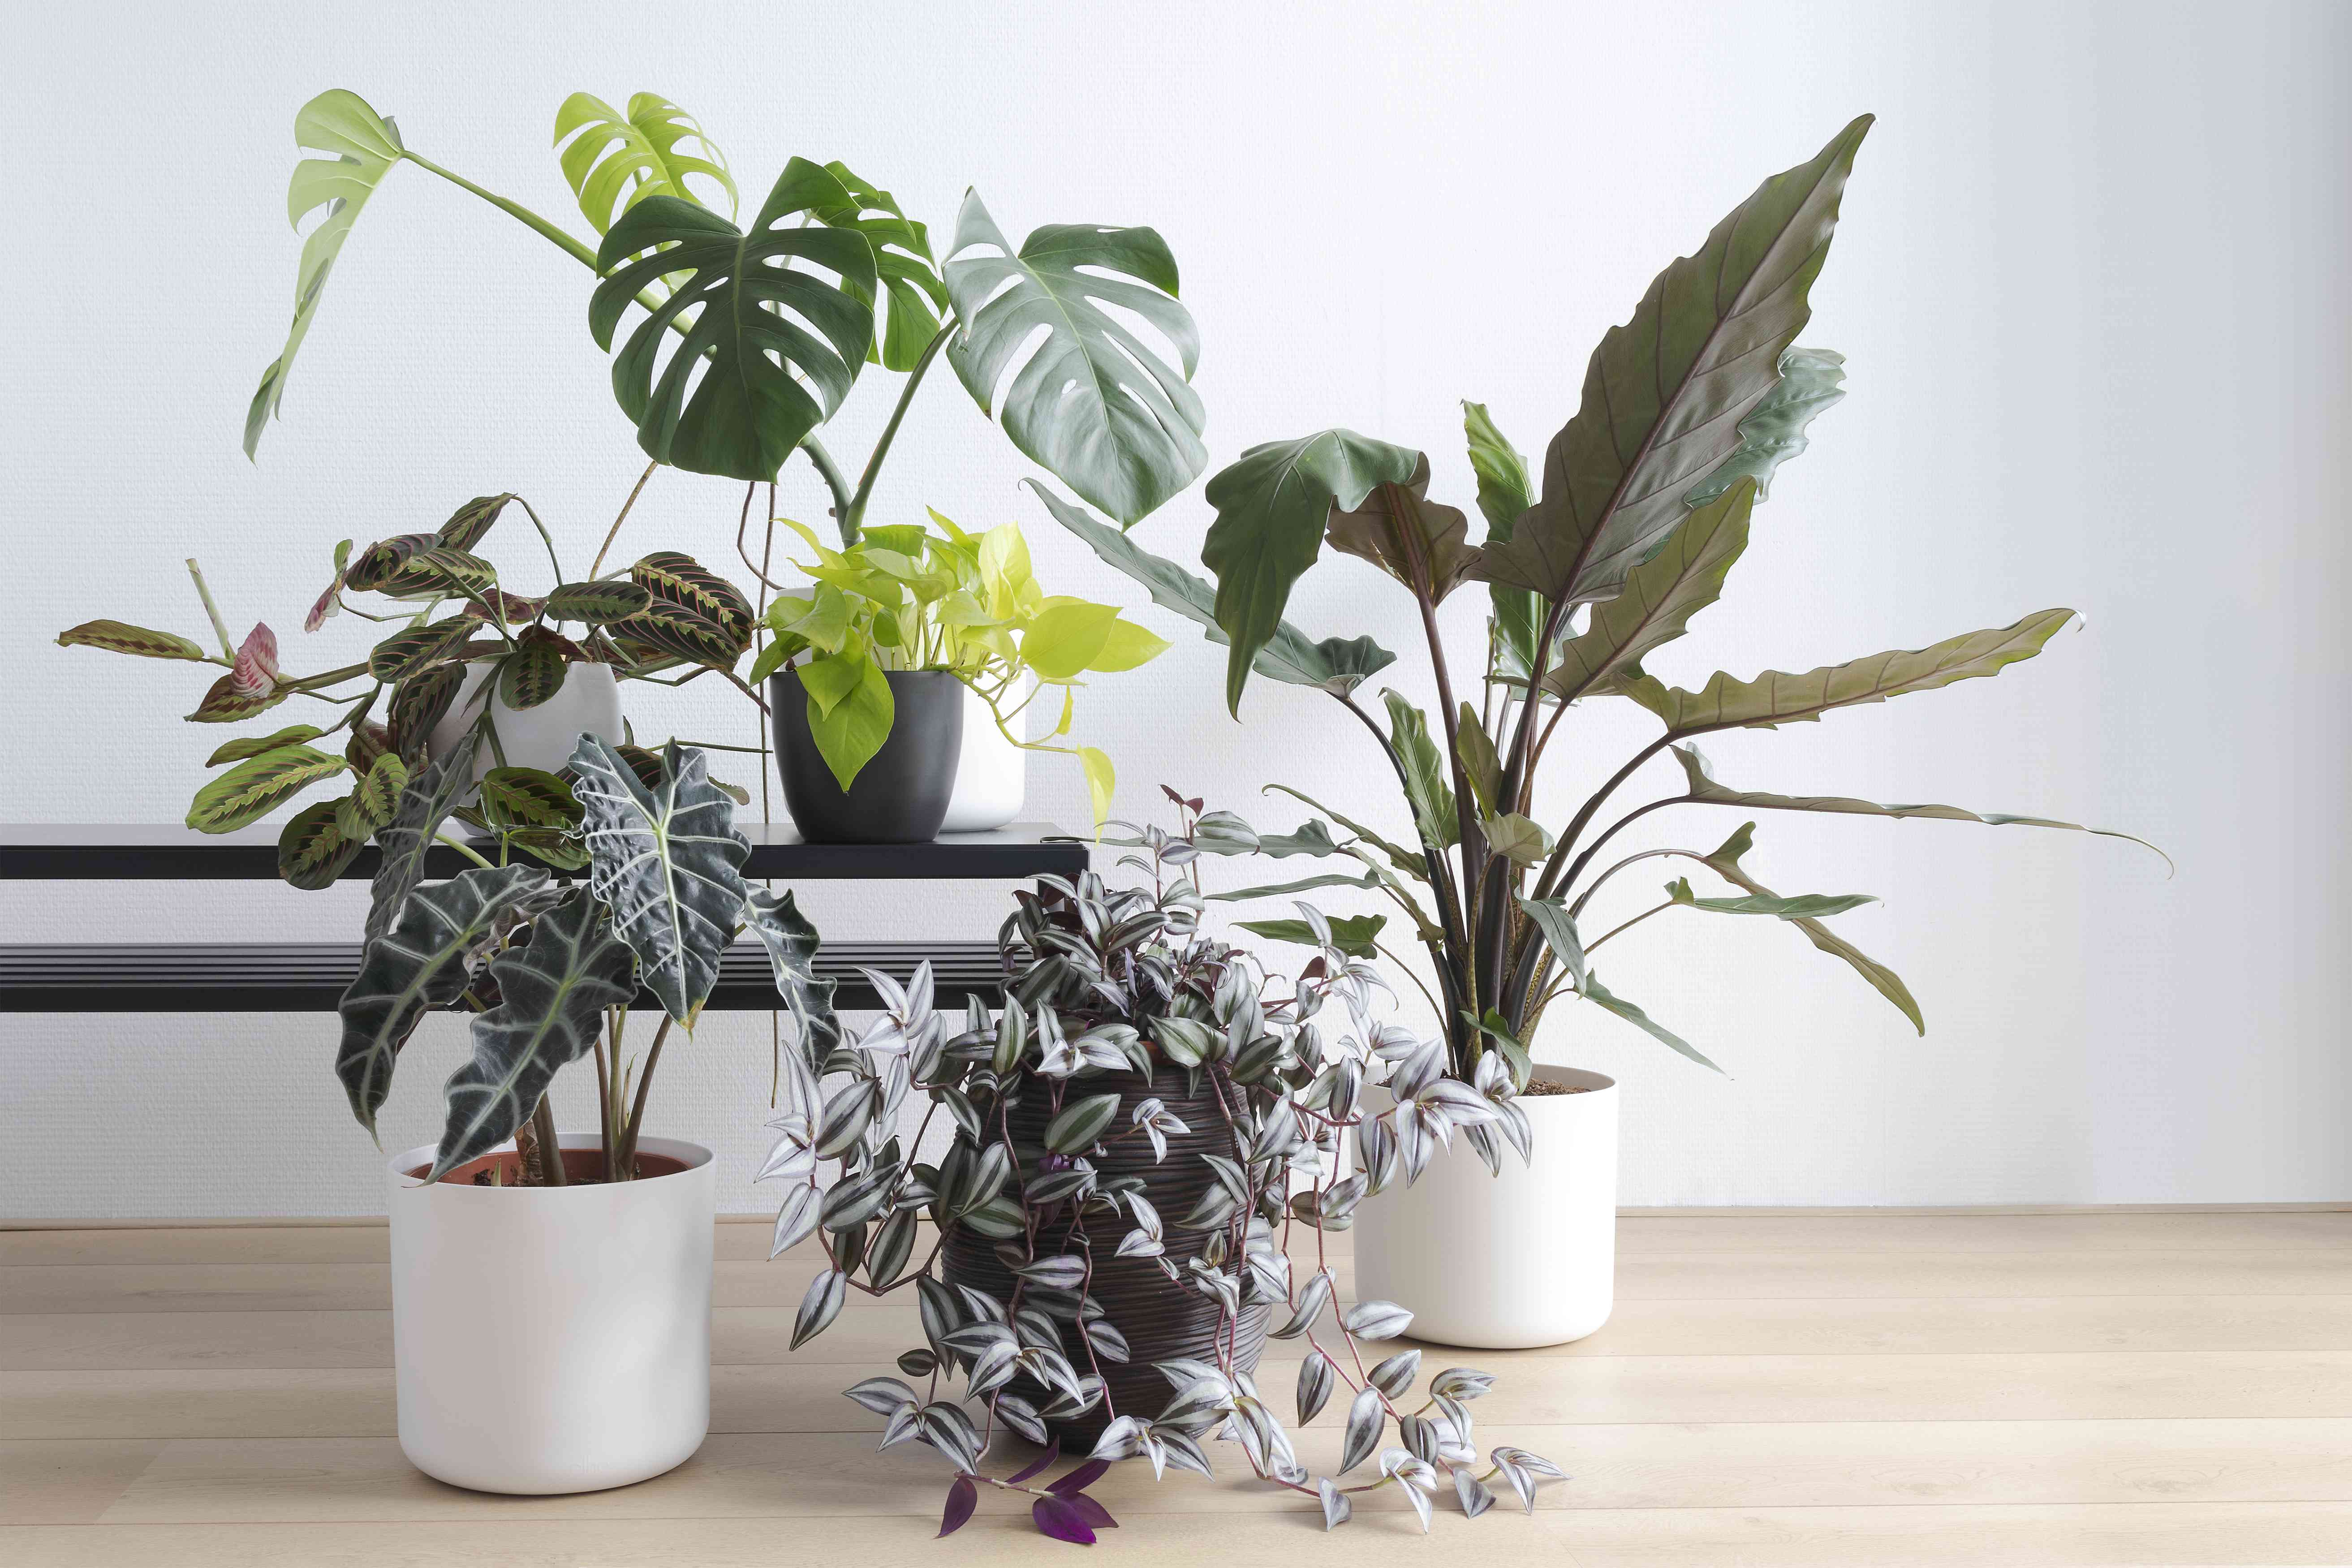 A collection of houseplants on a bench and floor.